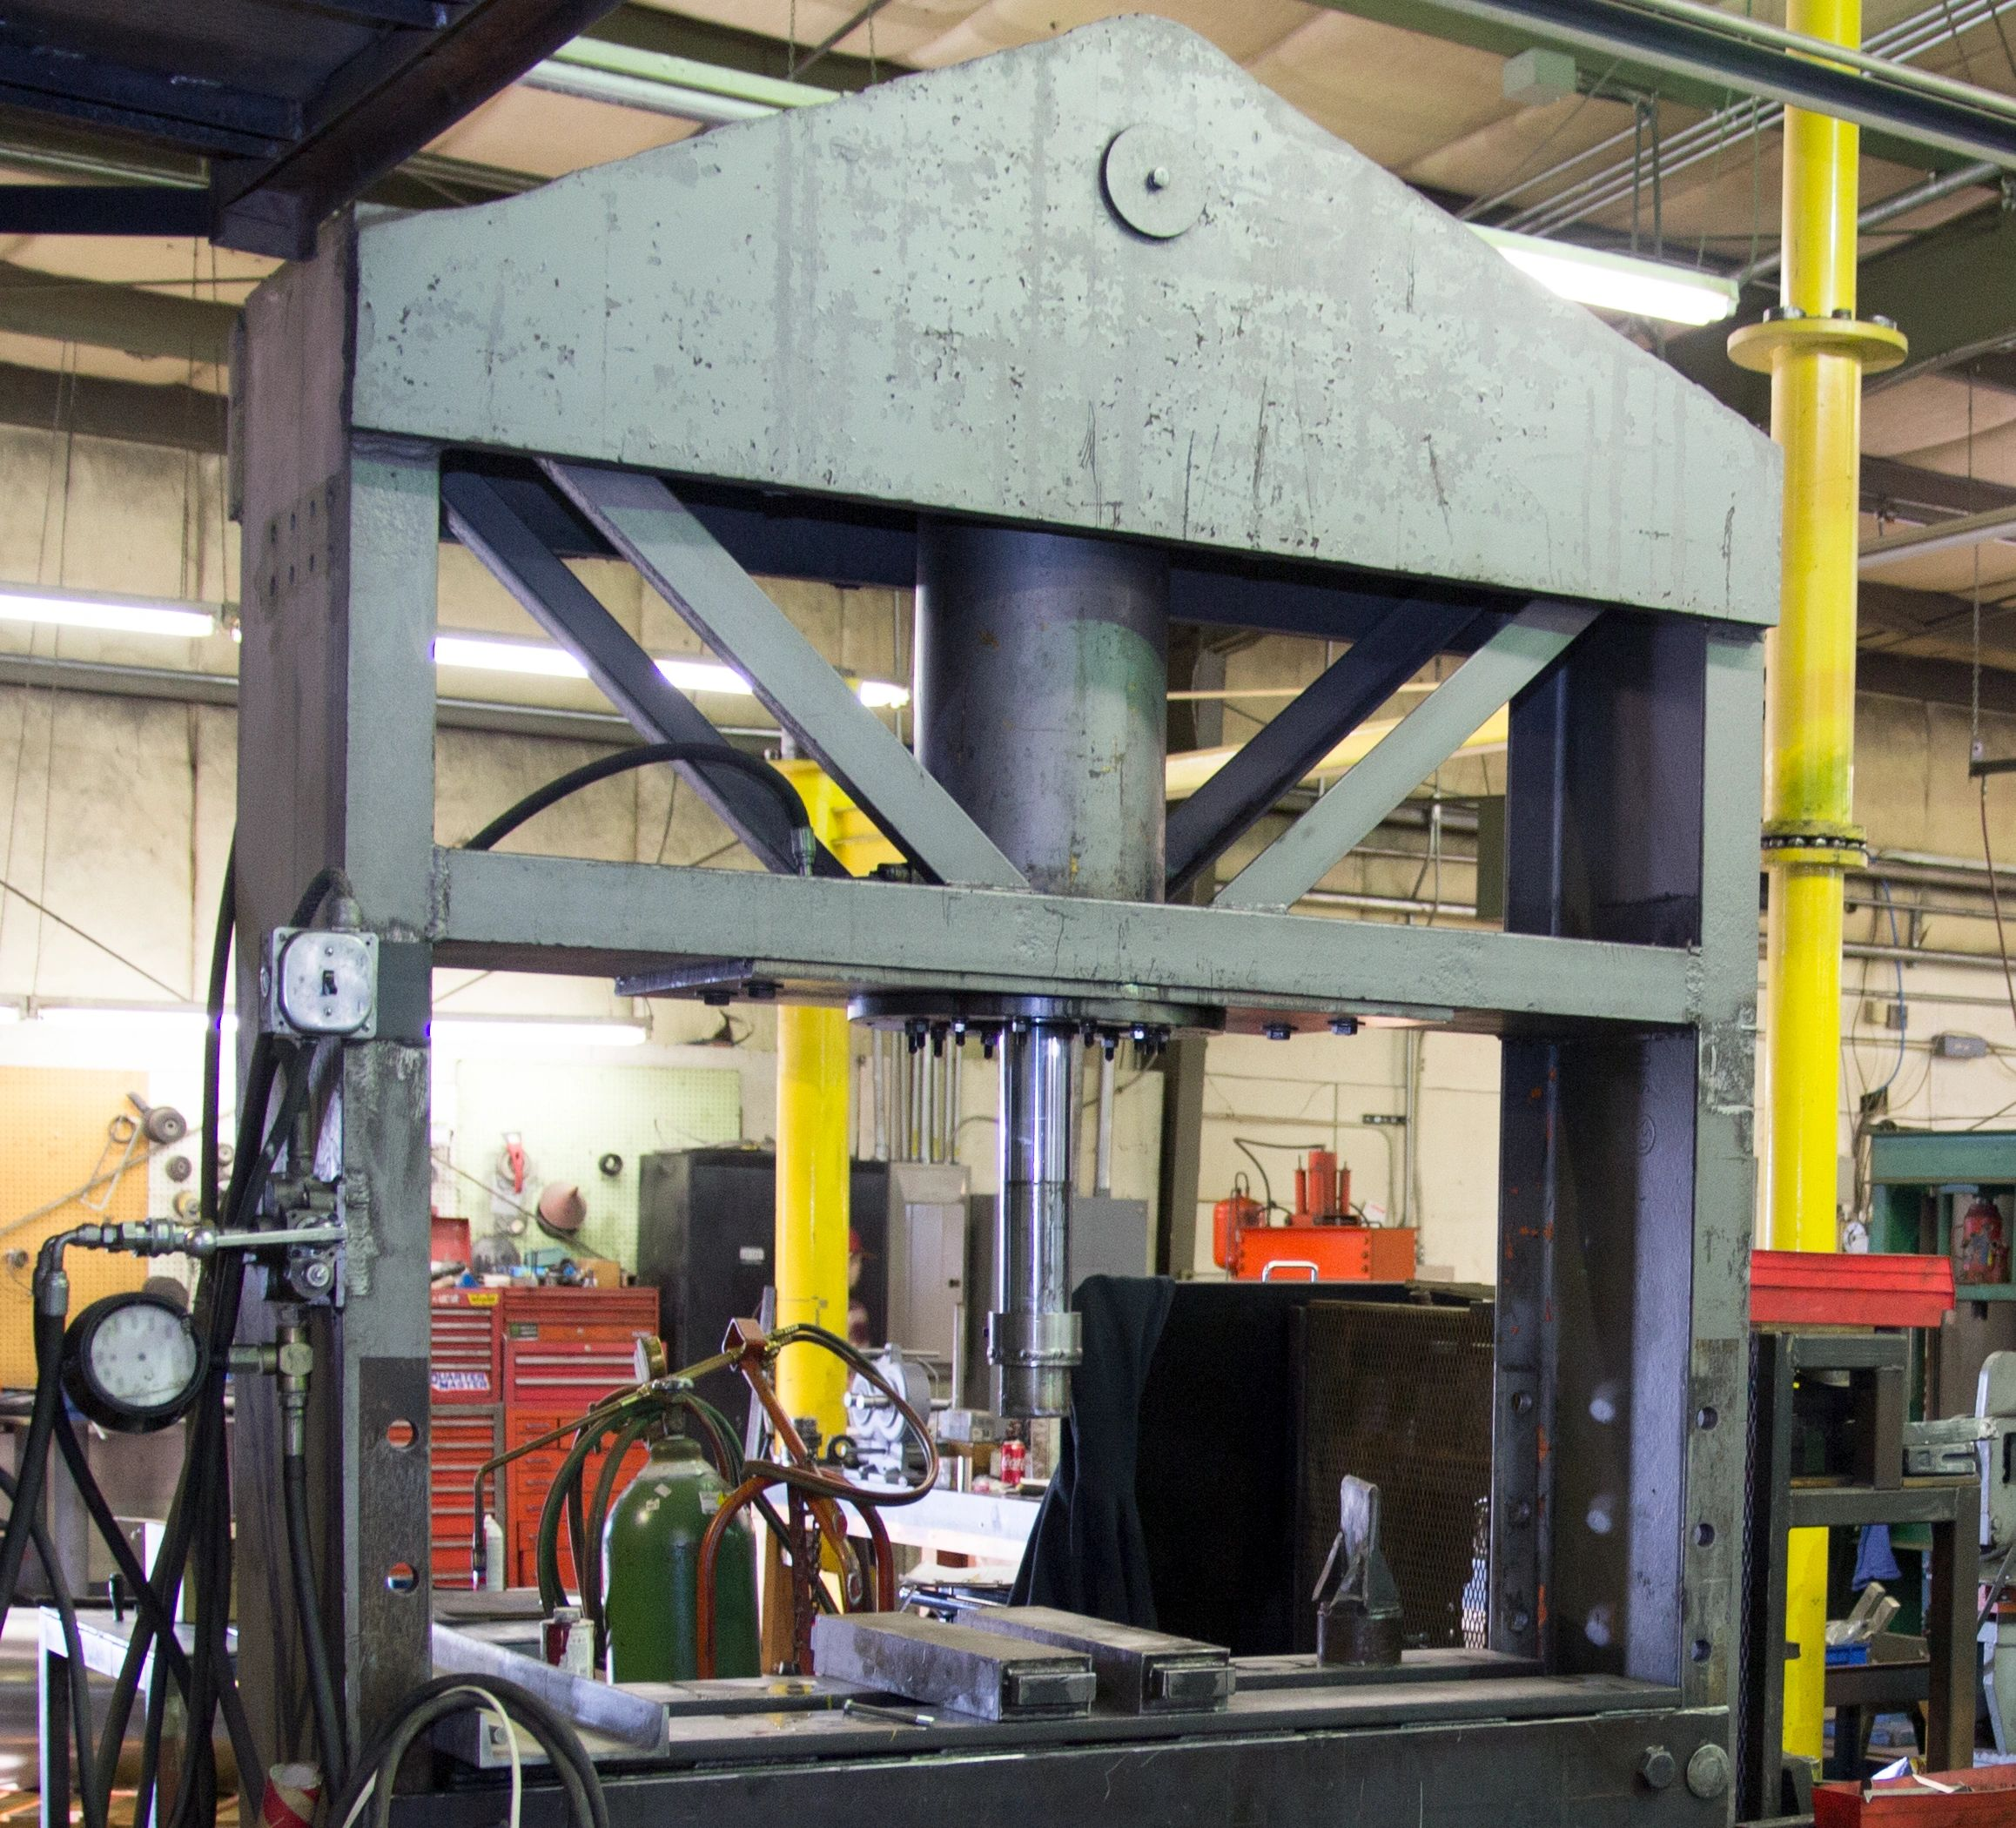 "{""blocks"":[{""key"":""1ok5h"",""text"":""Our 150 ton hydraulic press.  Able to broach keyways up to 1\""."",""type"":""unstyled"",""depth"":0,""inlineStyleRanges"":[{""offset"":0,""length"":62,""style"":""BOLD""}],""entityRanges"":[],""data"":{}}],""entityMap"":{}}"